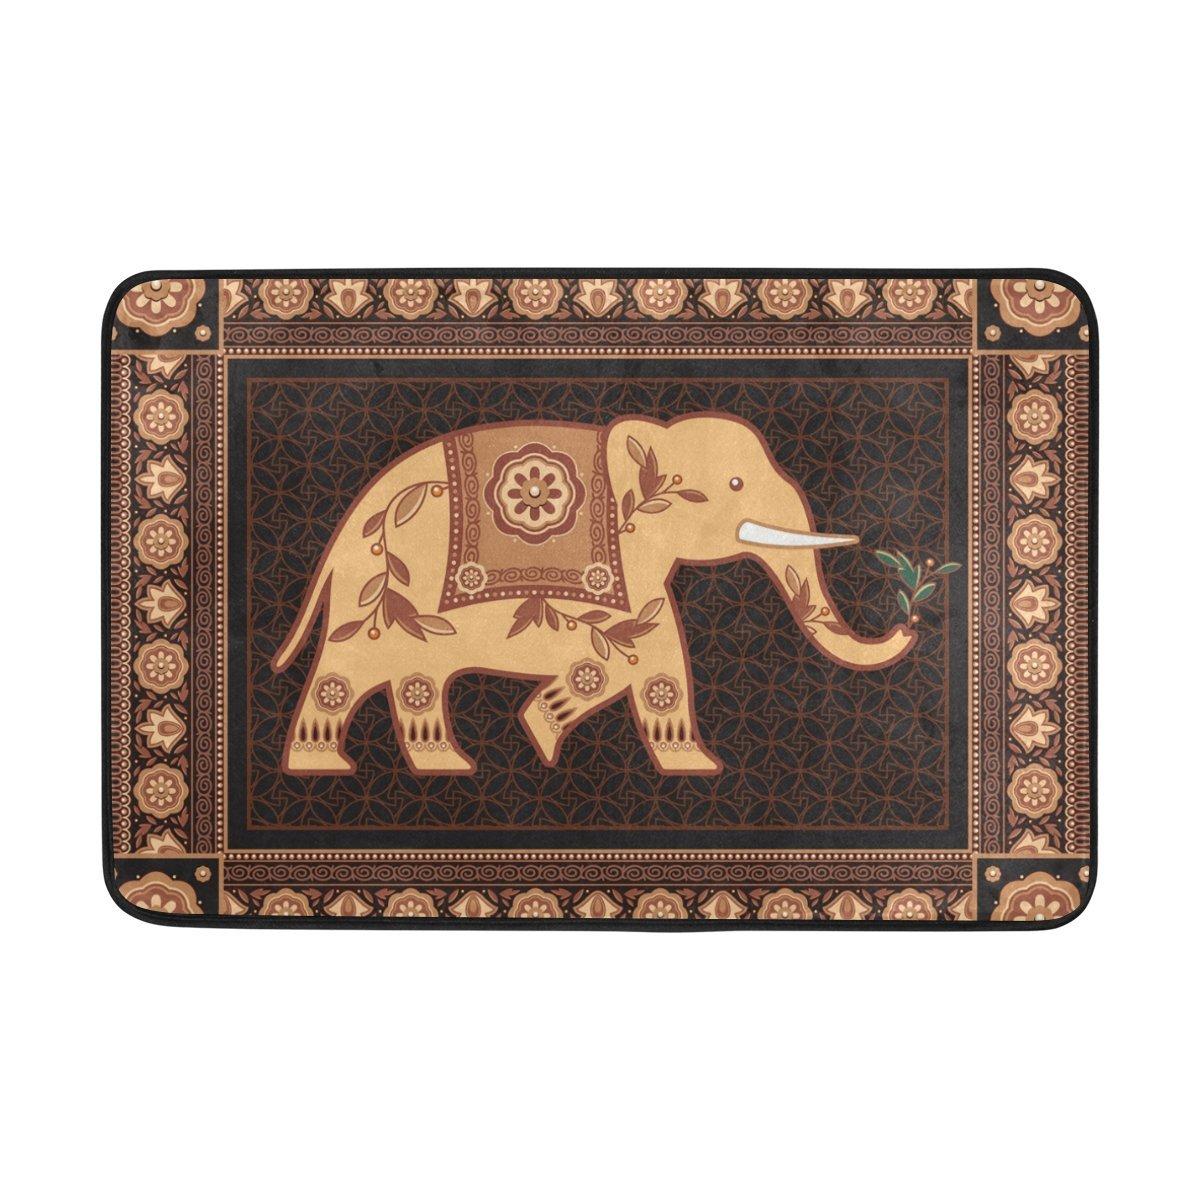 Mrmian Decorated Indian Elephant Rubber Non Slip Entry Way